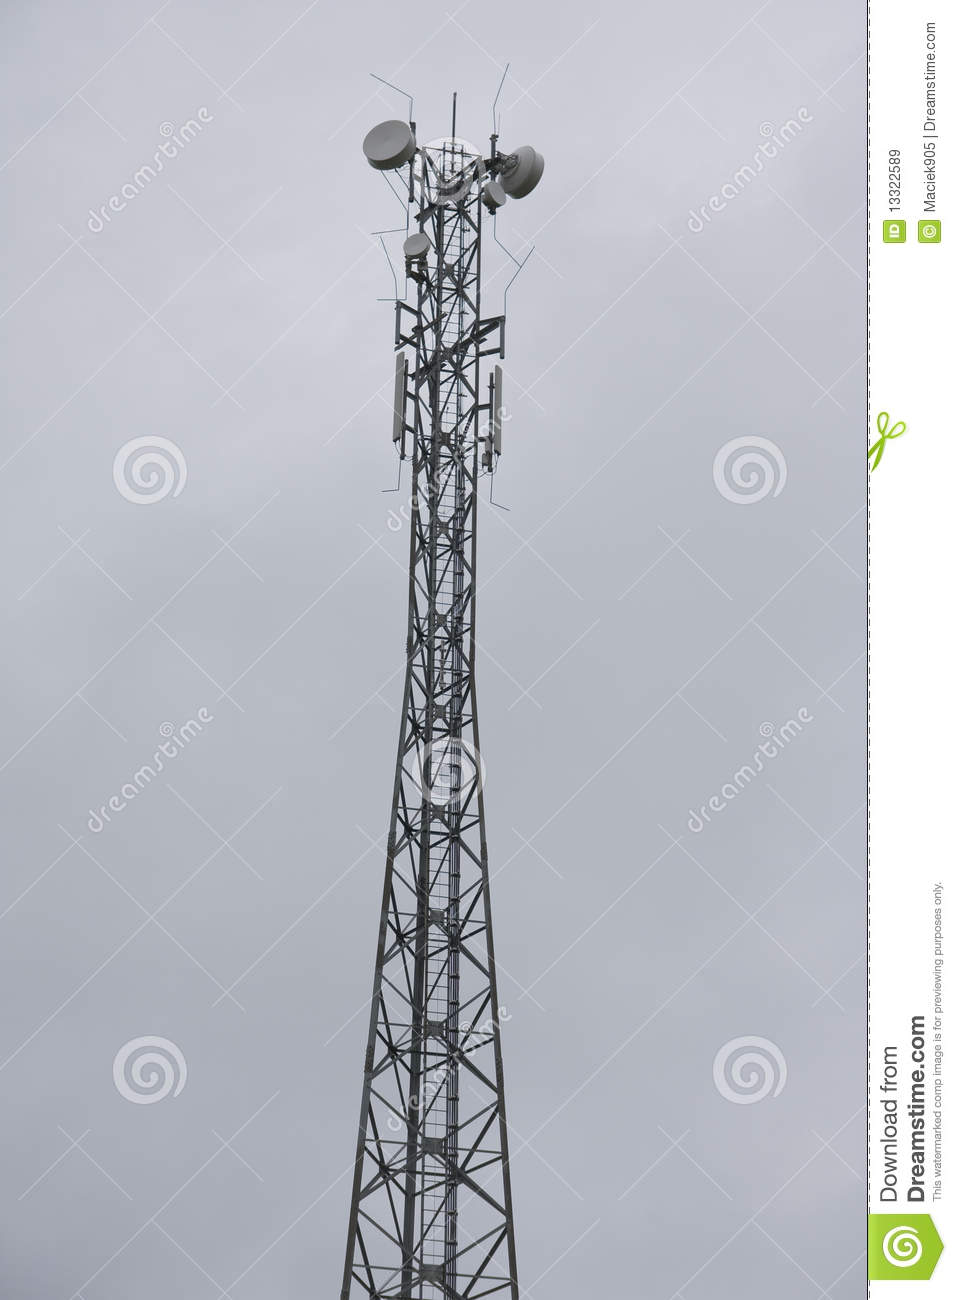 High transmitter tower